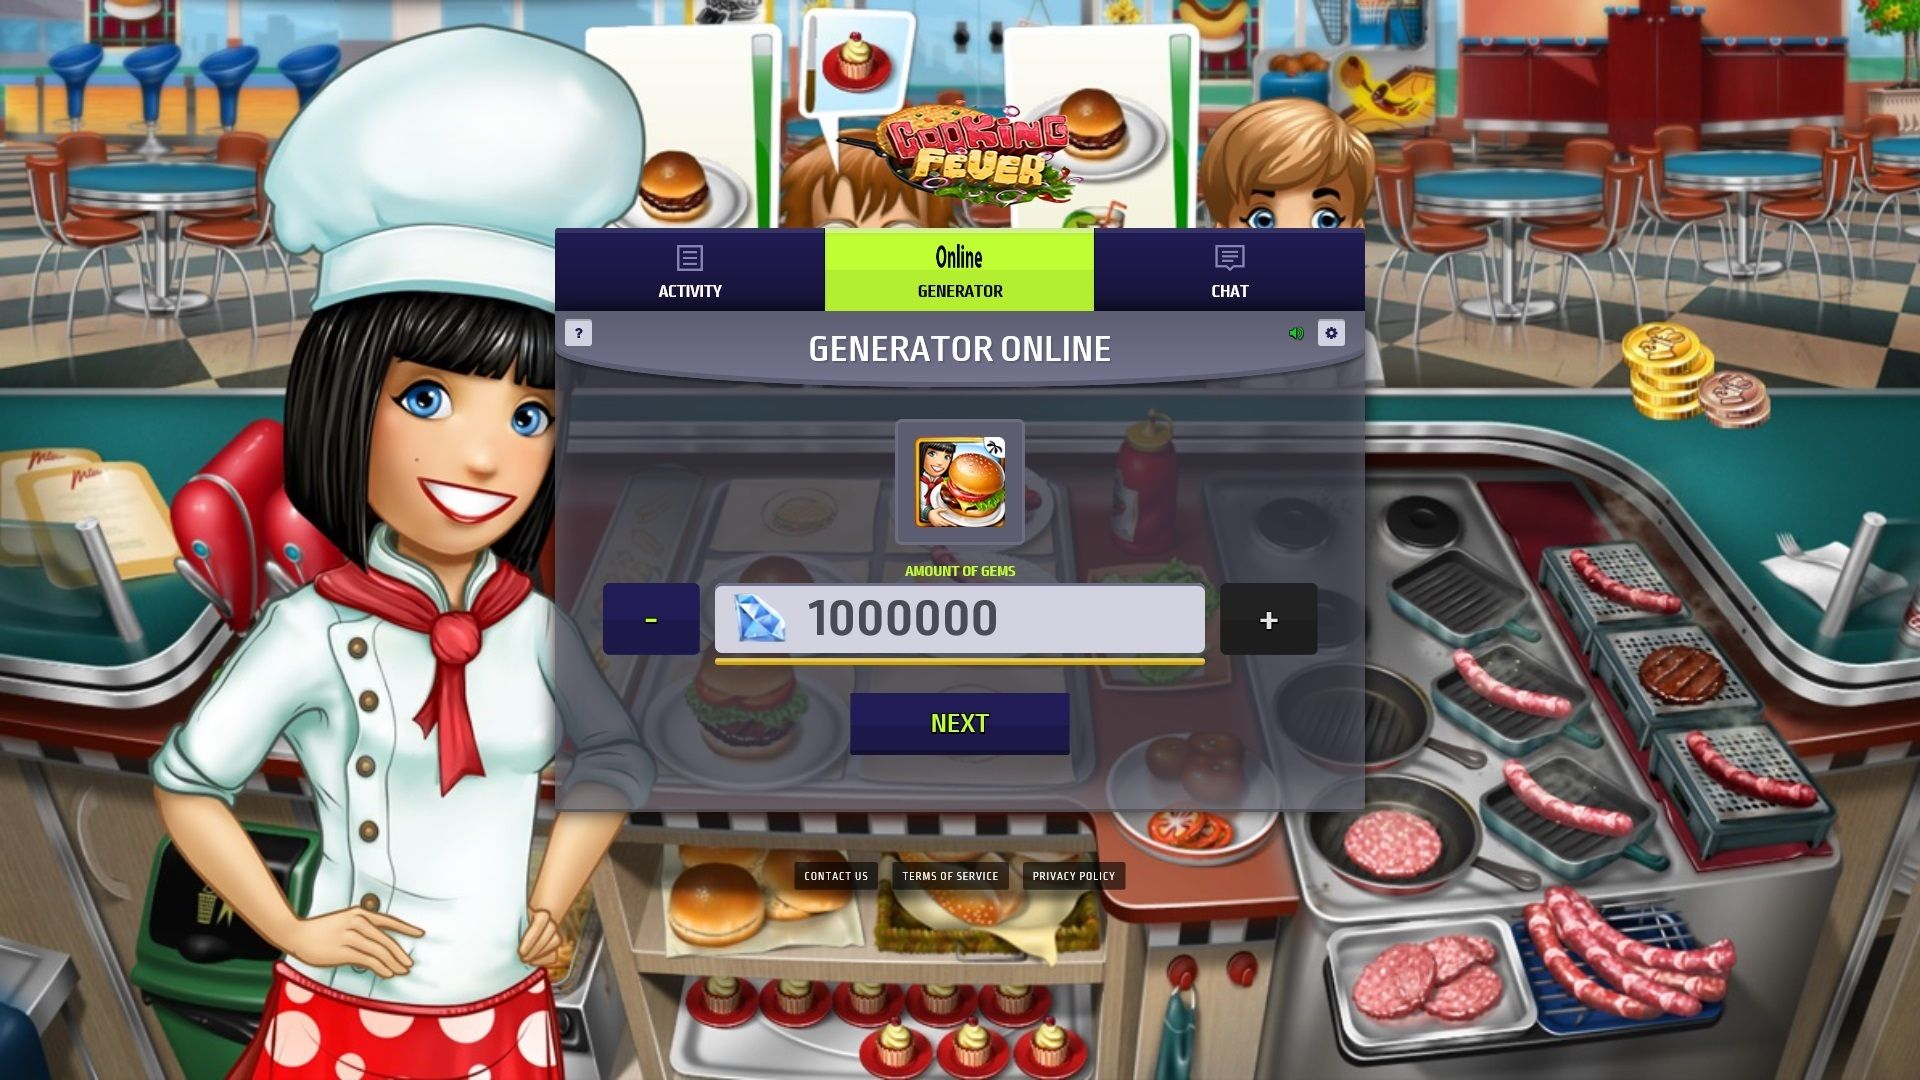 Cooking Fever in 2020 Cooking fever, Cooking fever game